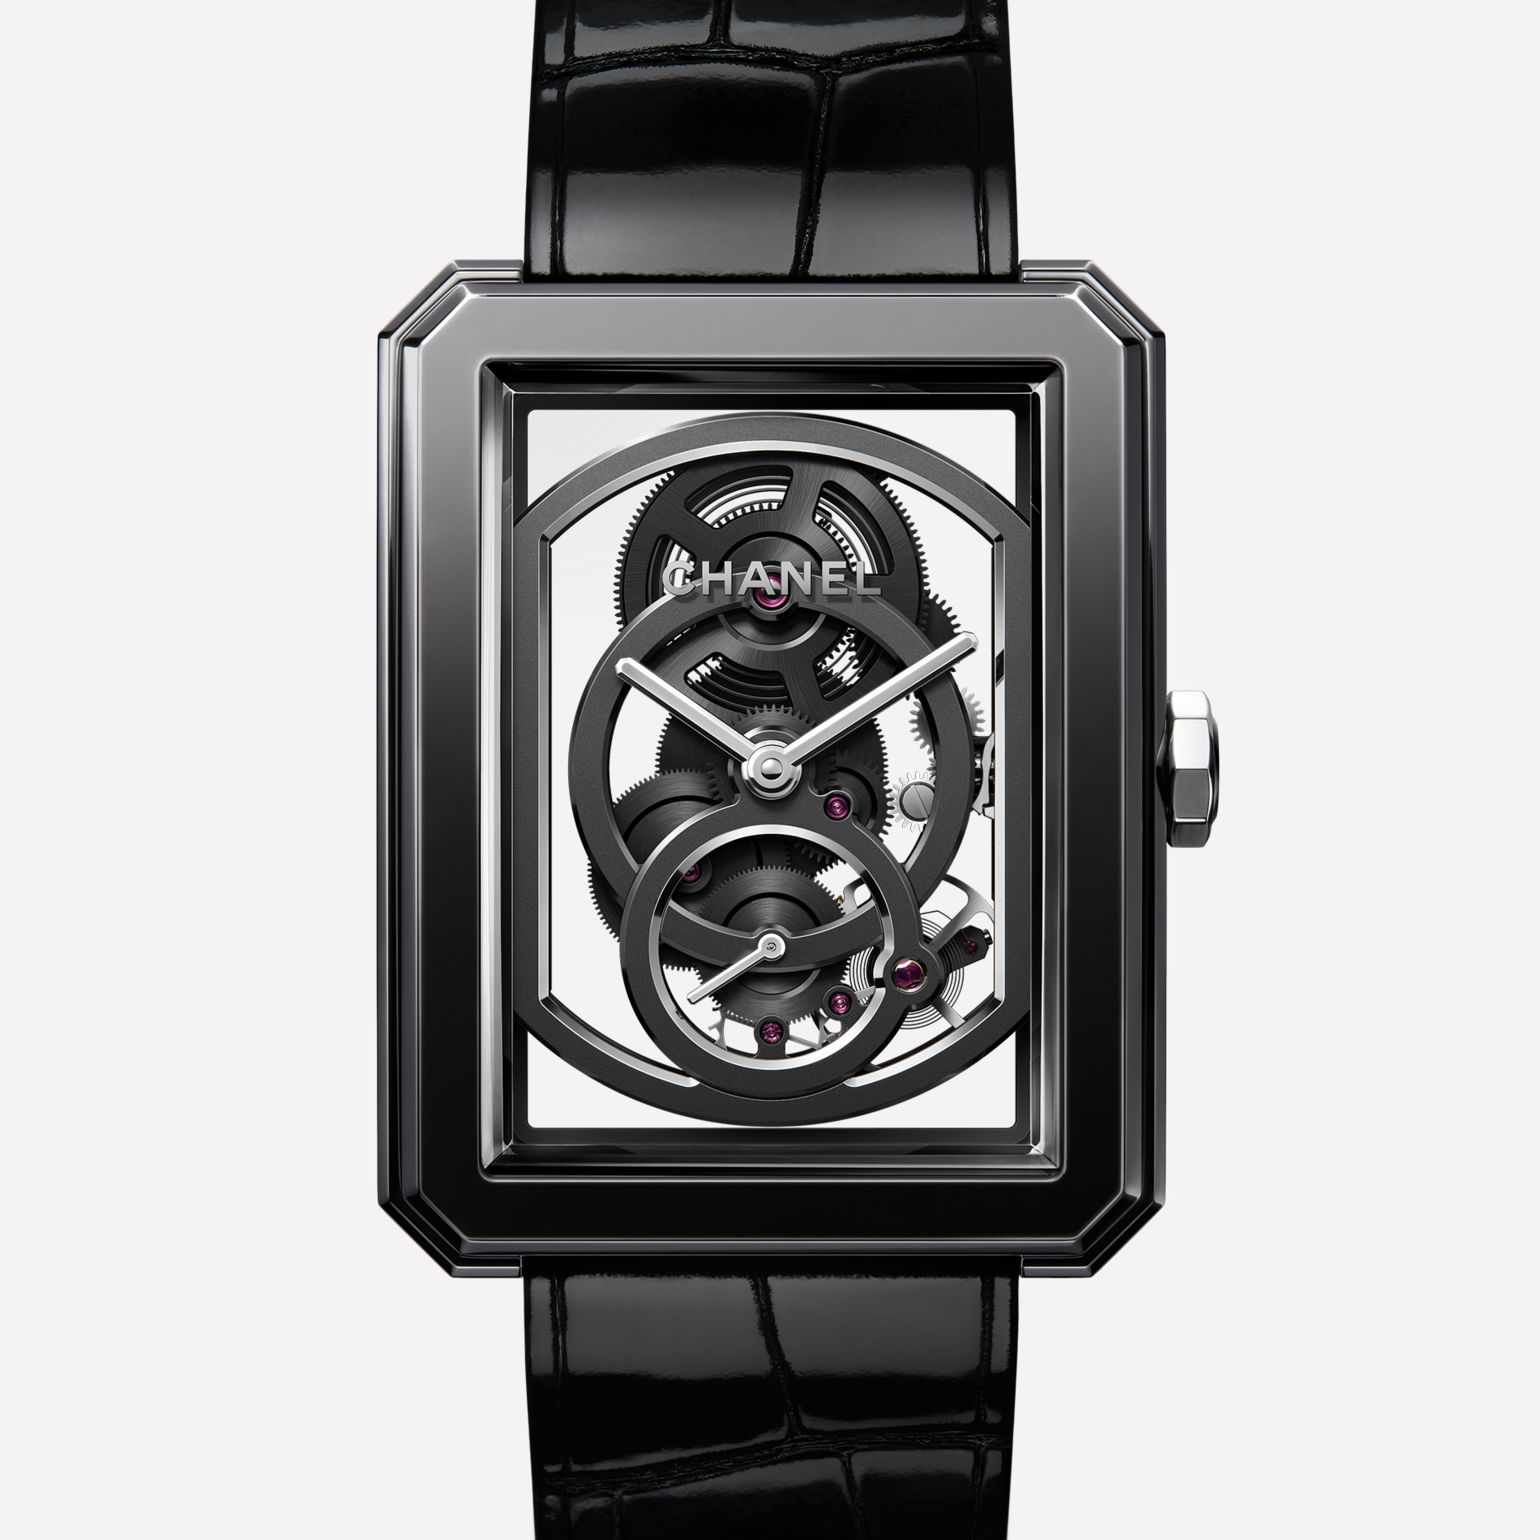 BOY·FRIEND Skeleton Watch Black highly resistant ceramic, steel and shiny alligator strap. Large version.